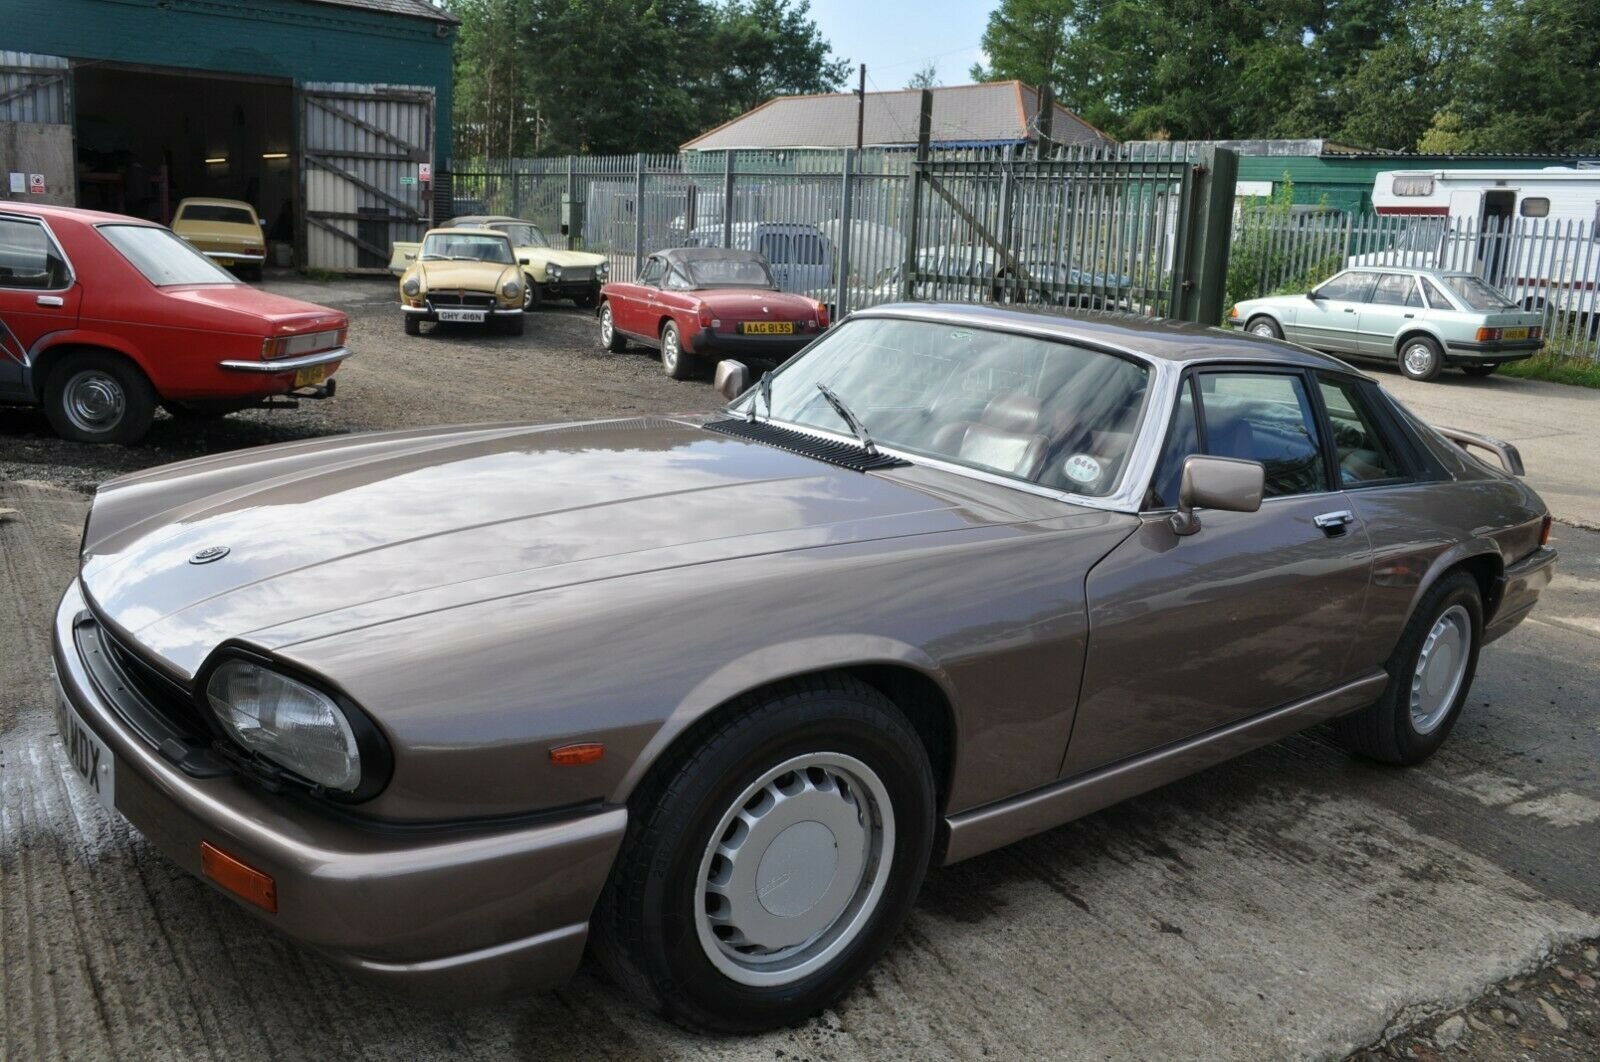 1984 JAGUAR XJS V12 5.3 HE VERY RARE GOOD CONDITION WITH MOT TWR For Sale (picture 2 of 6)